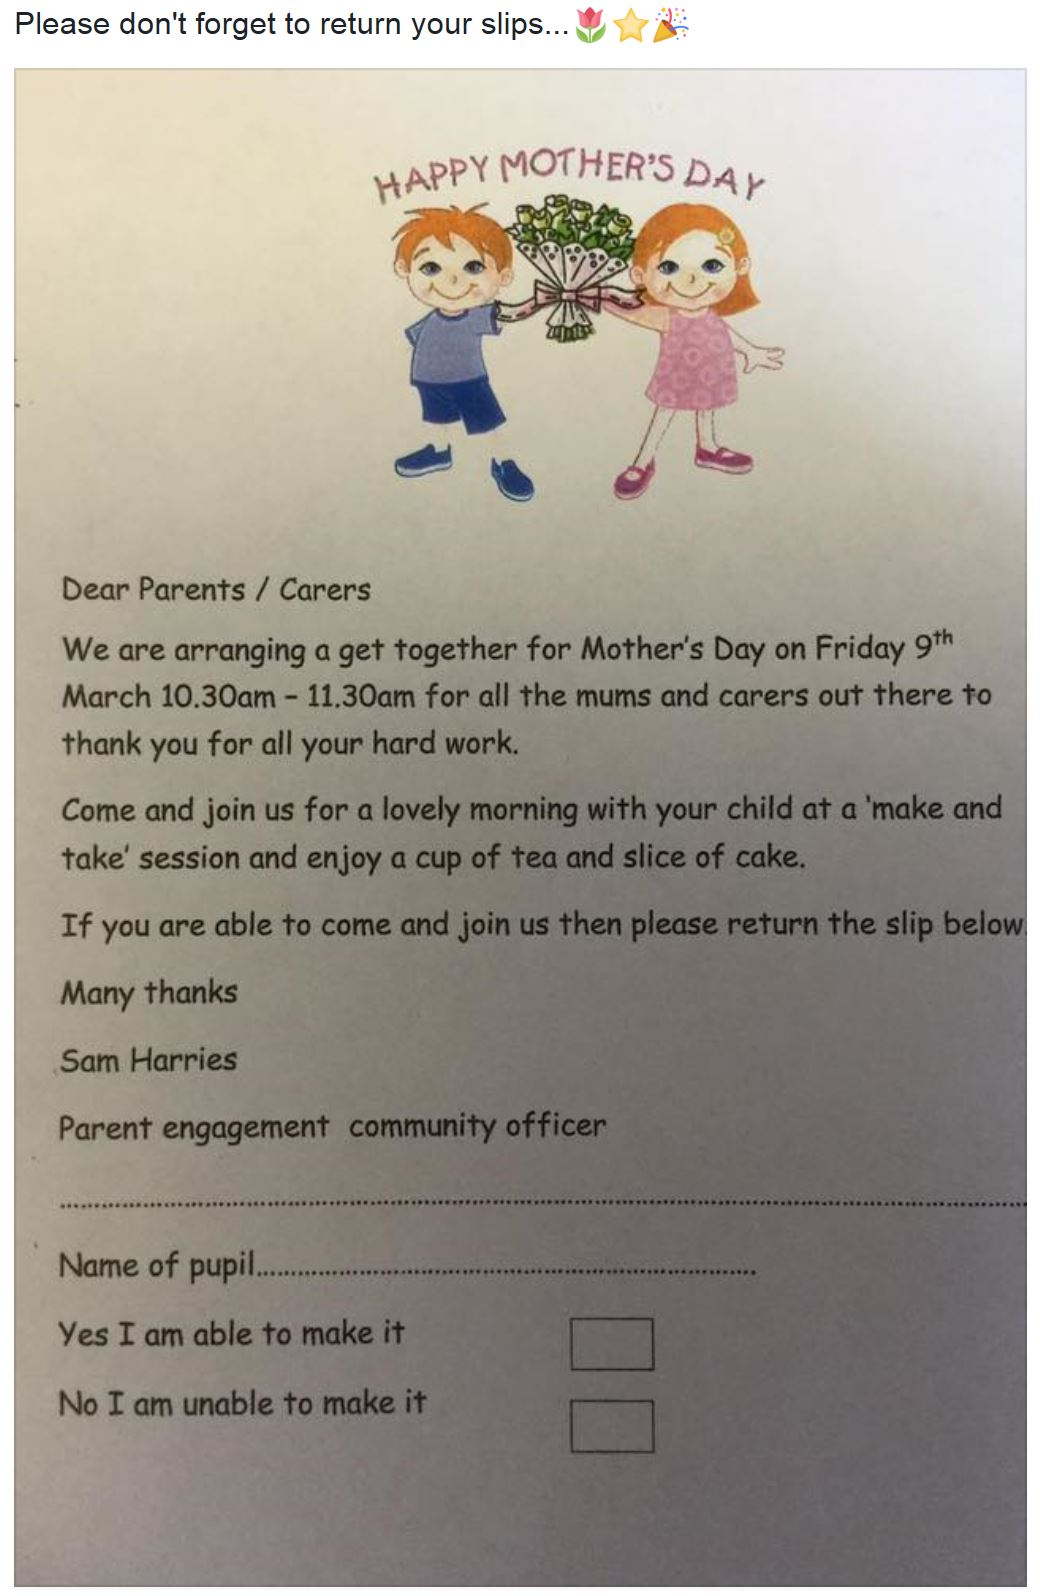 Mothers Day Get together slips